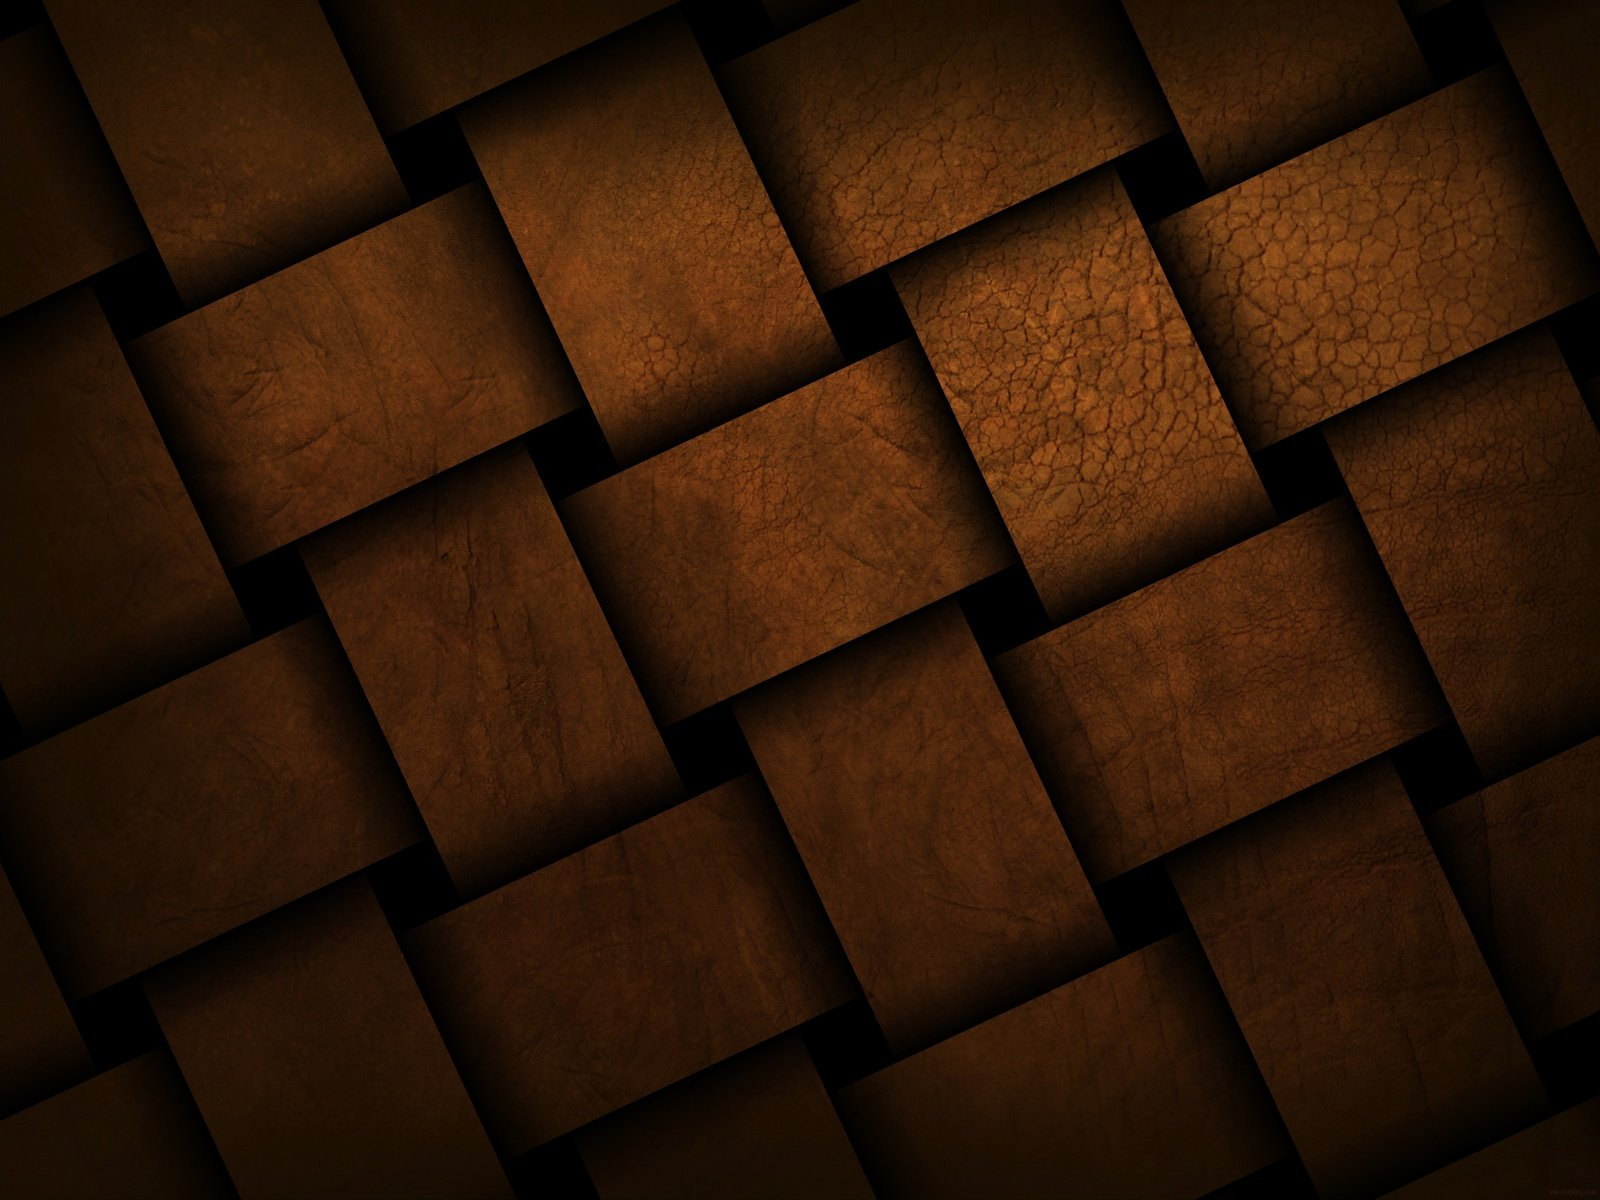 Old Brown Wallpaper 1600x1200 Old Brown Leather By Warzhell 1600x1200